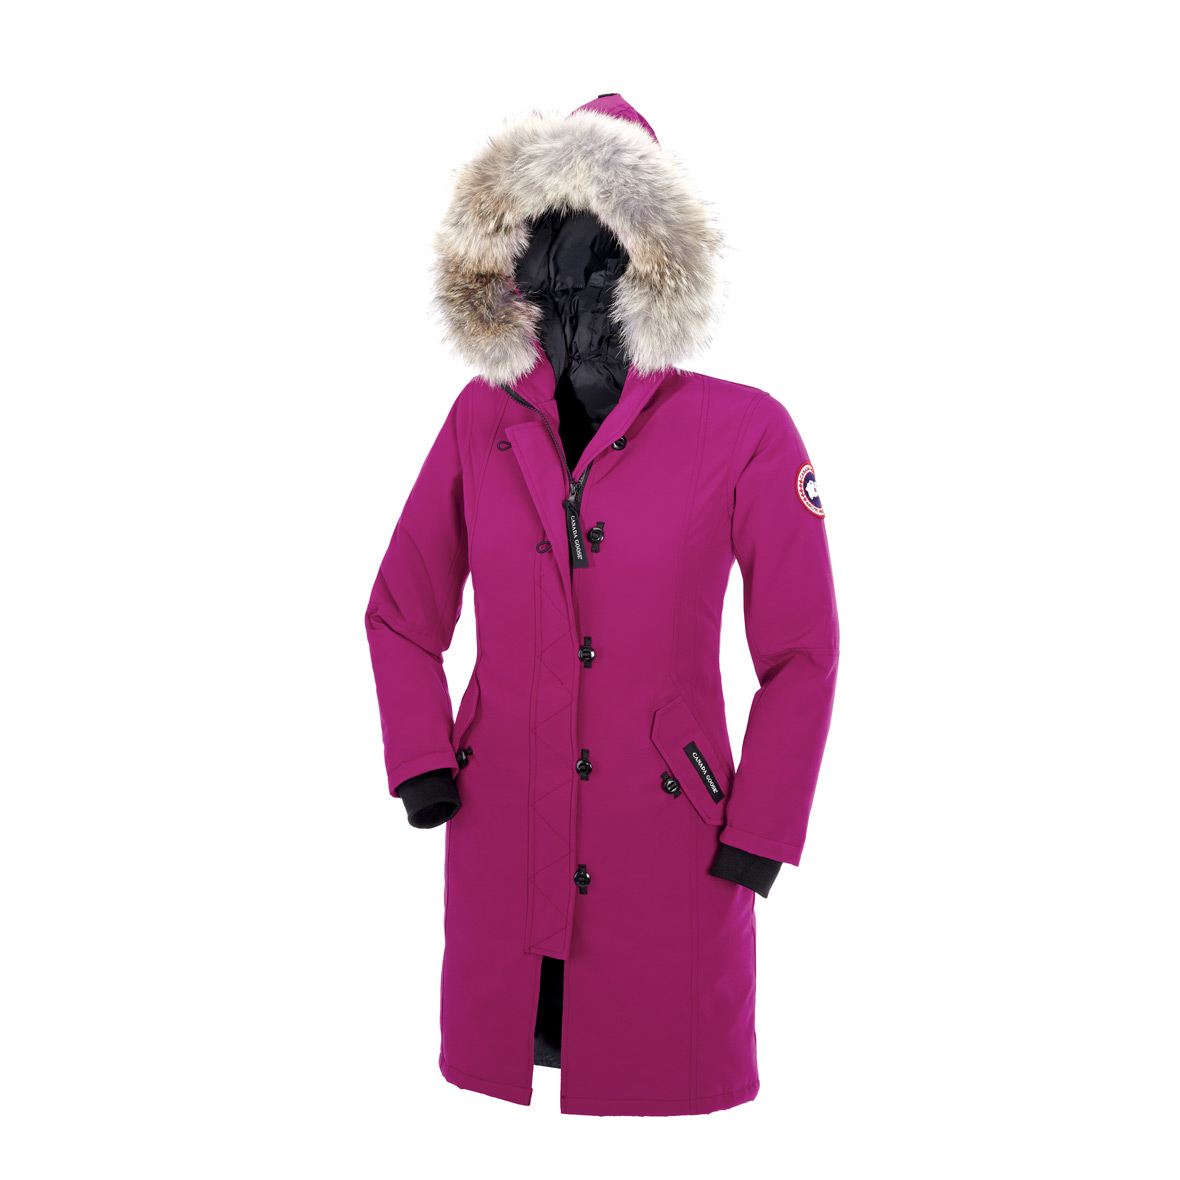 Canada Goose [4-20] Kensington Parka SUMMIT PINK For Girl